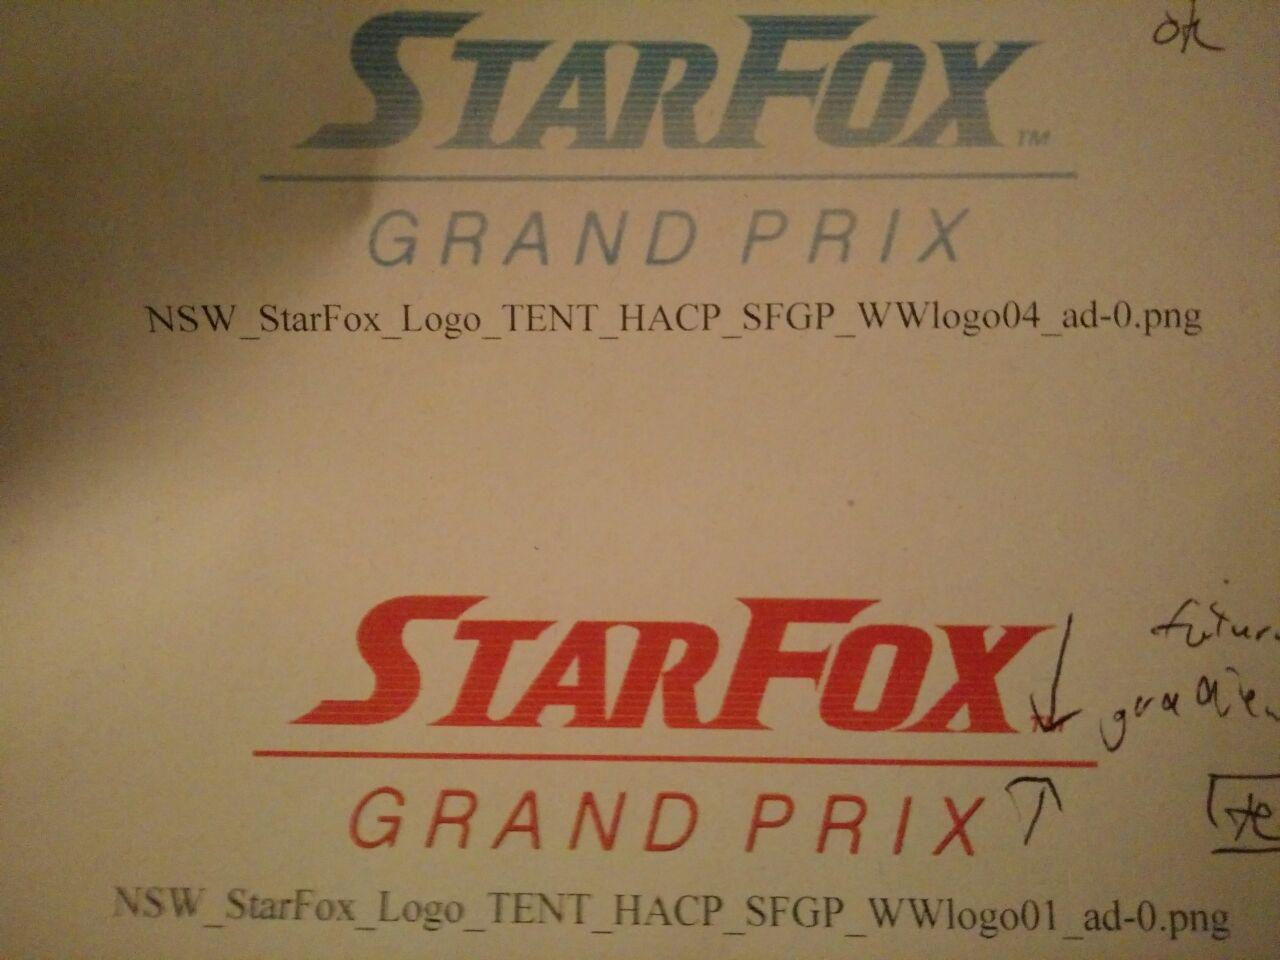 Star Fox racing game rumoured